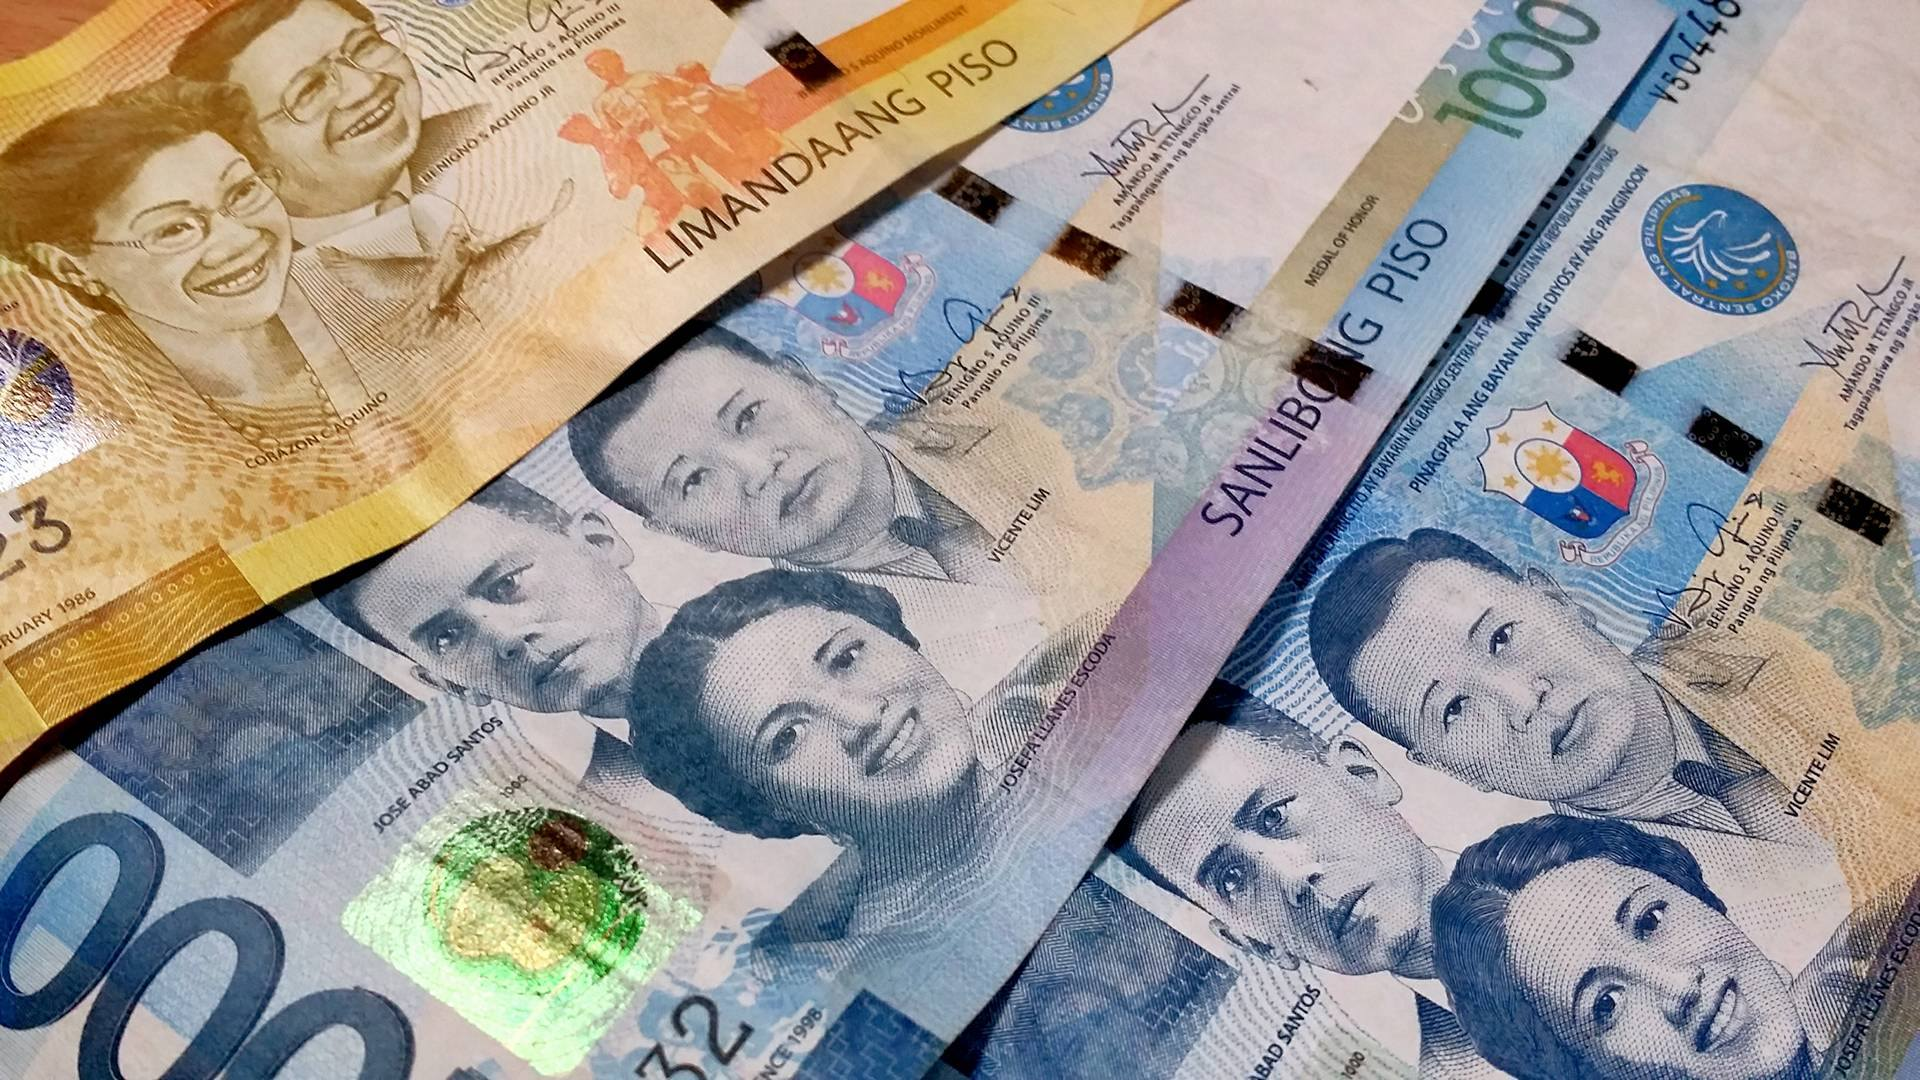 Malacañang on Tuesday said that President Rodrigo Duterte's 'decisive leadership' in pursuing peace and order has resulted to healthy economic growth as indicated by the sustained strength of the Philippine peso.  (Photo: Cheng Ilagan/Philippine Canadian Inquirer)